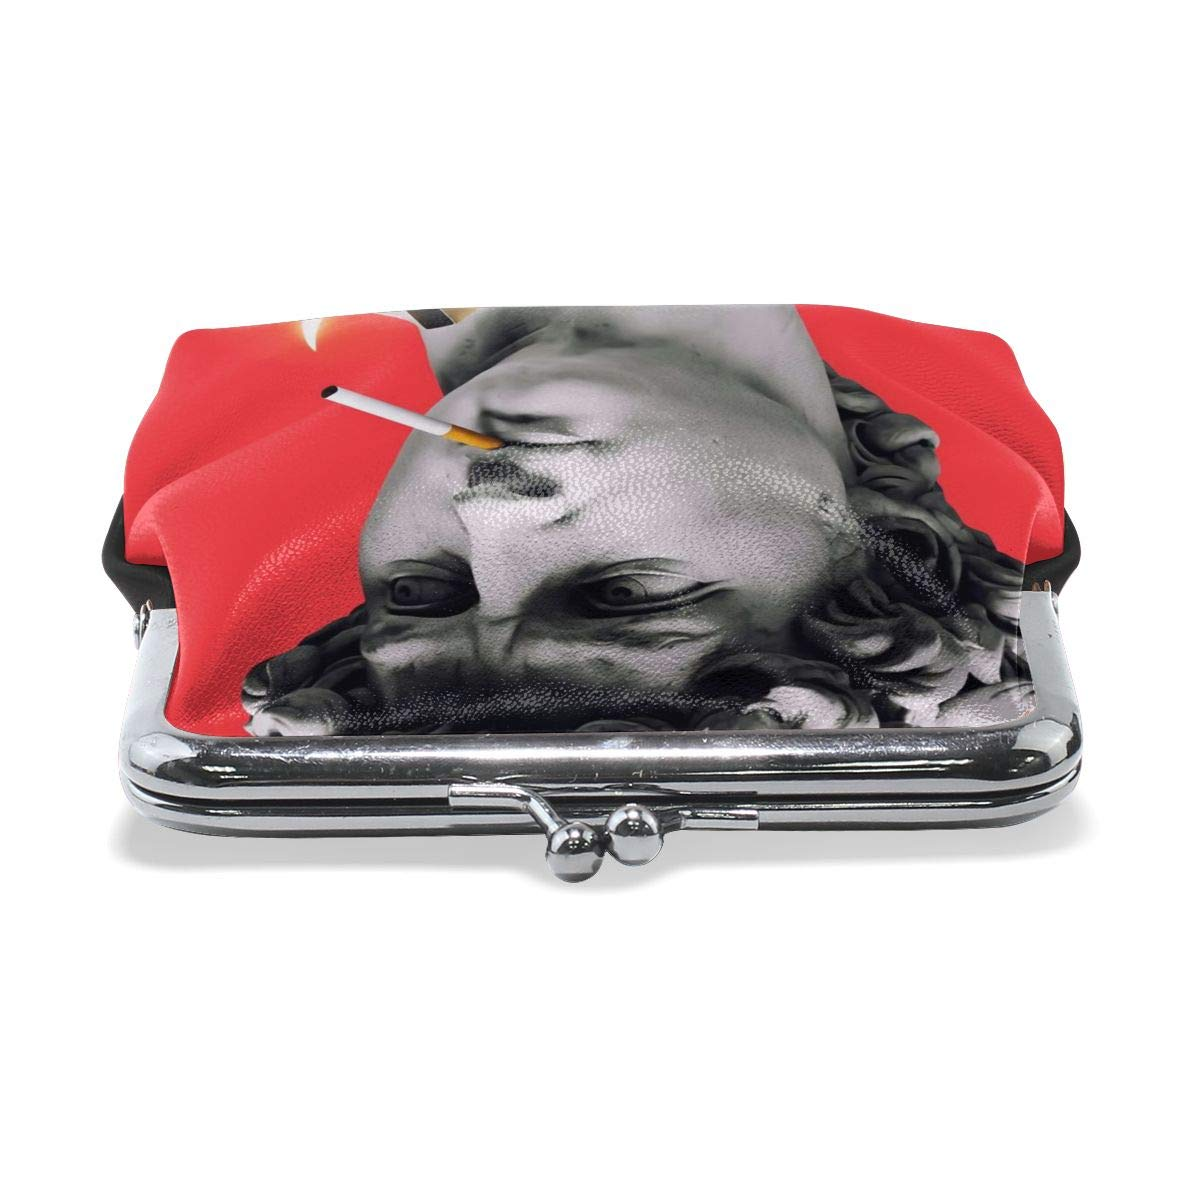 Davids Statue Art Kicks Funny Cool Smoking Vintage Pouch Girl Kiss-lock Change Purse Wallets Buckle Leather Coin Purses Key Woman Printed